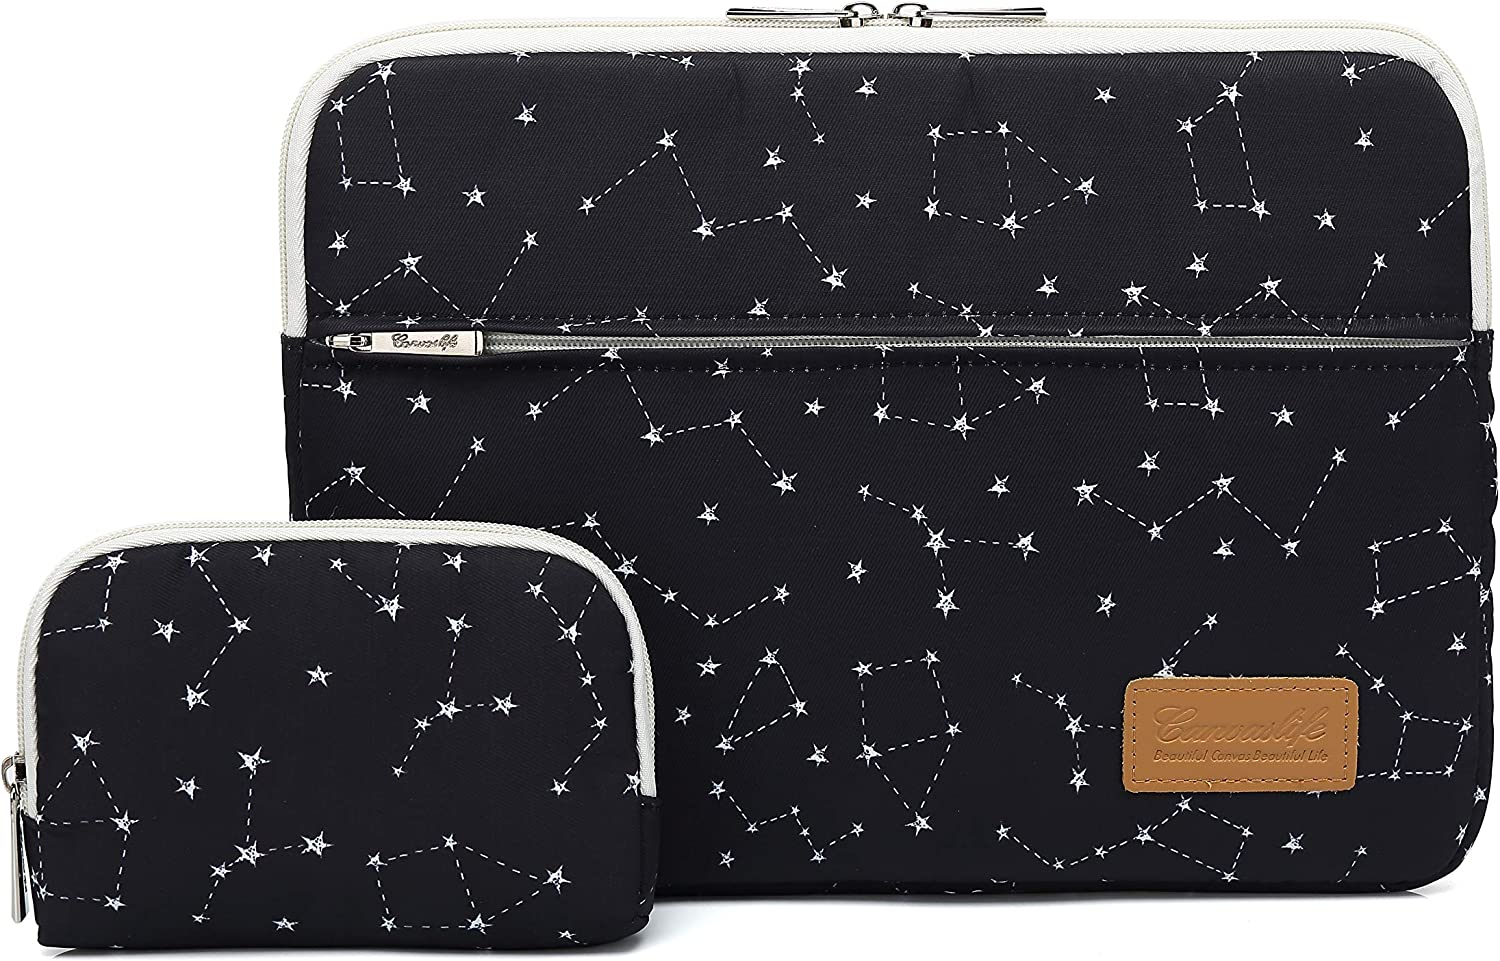 Canvaslife Black Star Pattern 360 Degree Protective Waterproof Laptop Sleeve 15 Inch 15 Case and 15.6 Laptop Bag